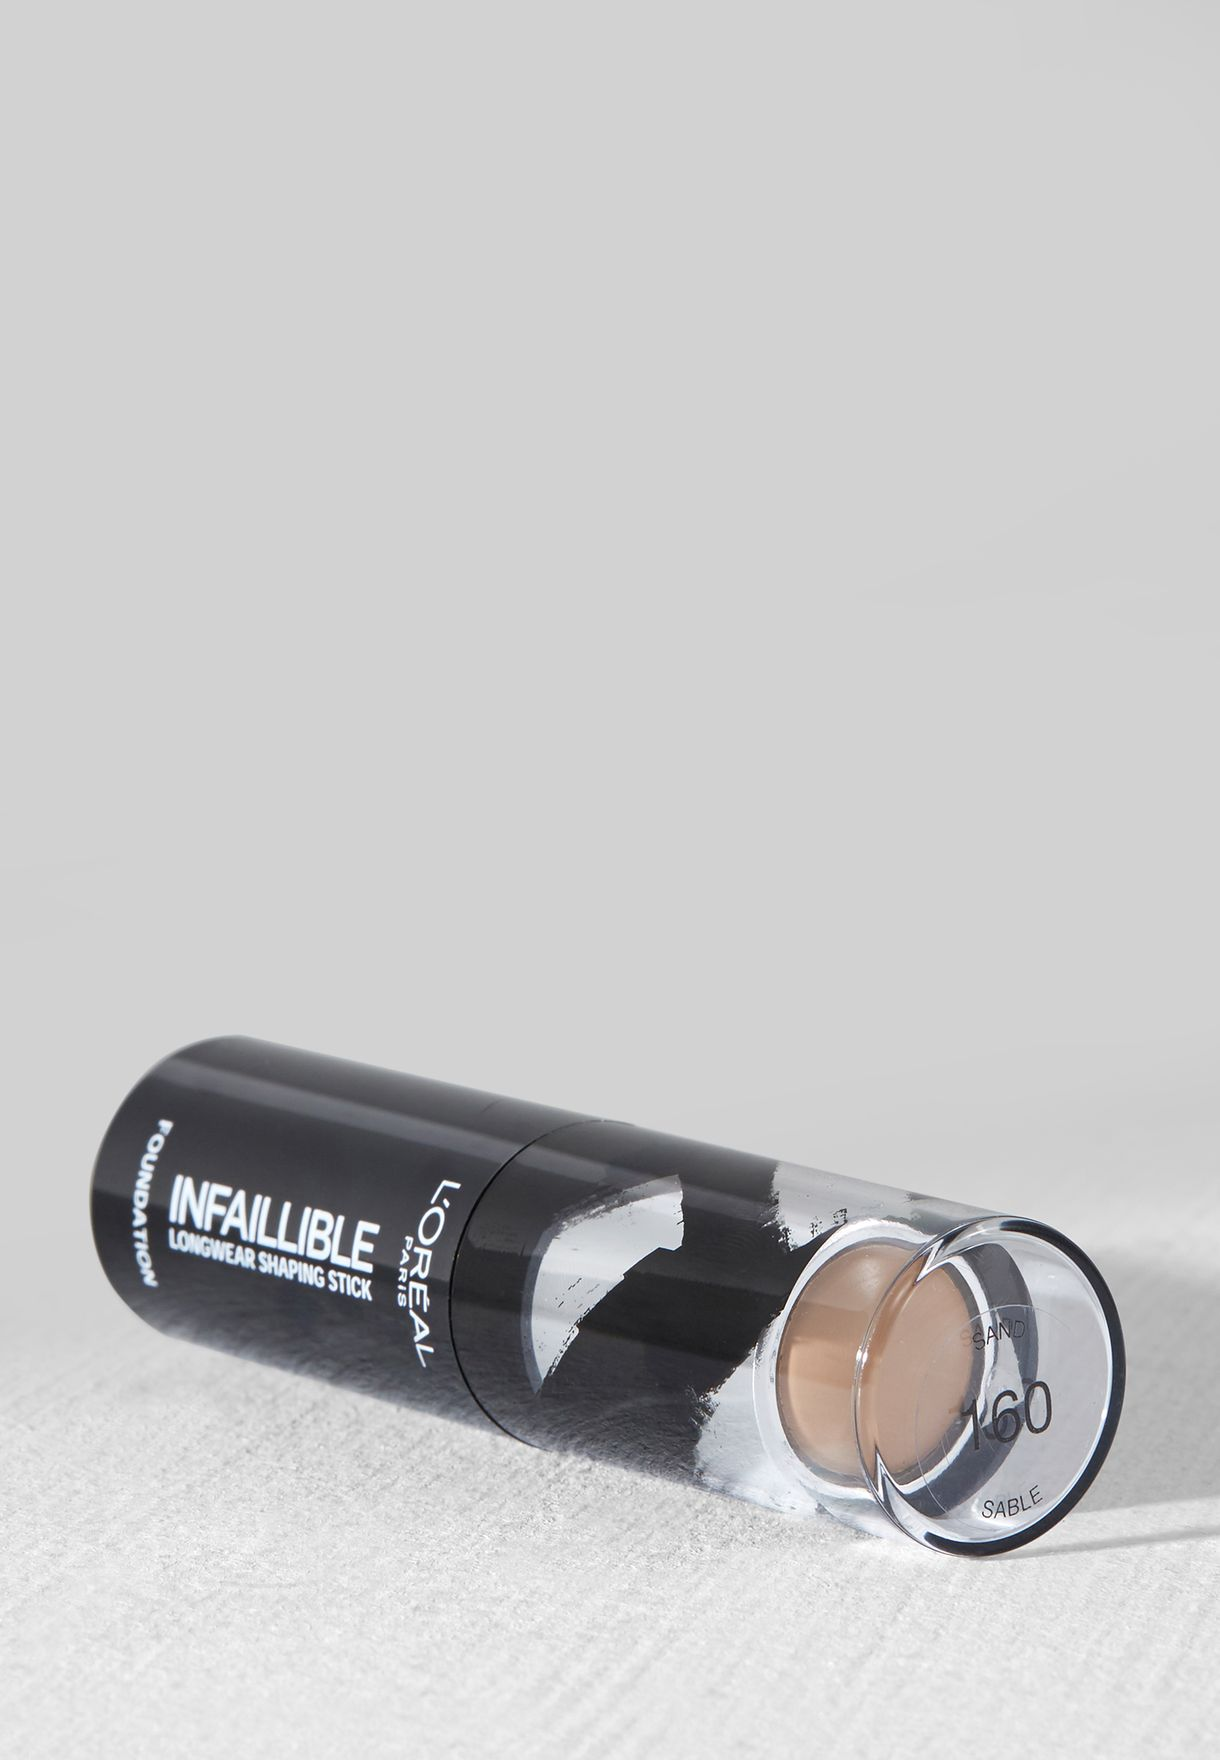 Infallible Foundation Stick 160 Sand